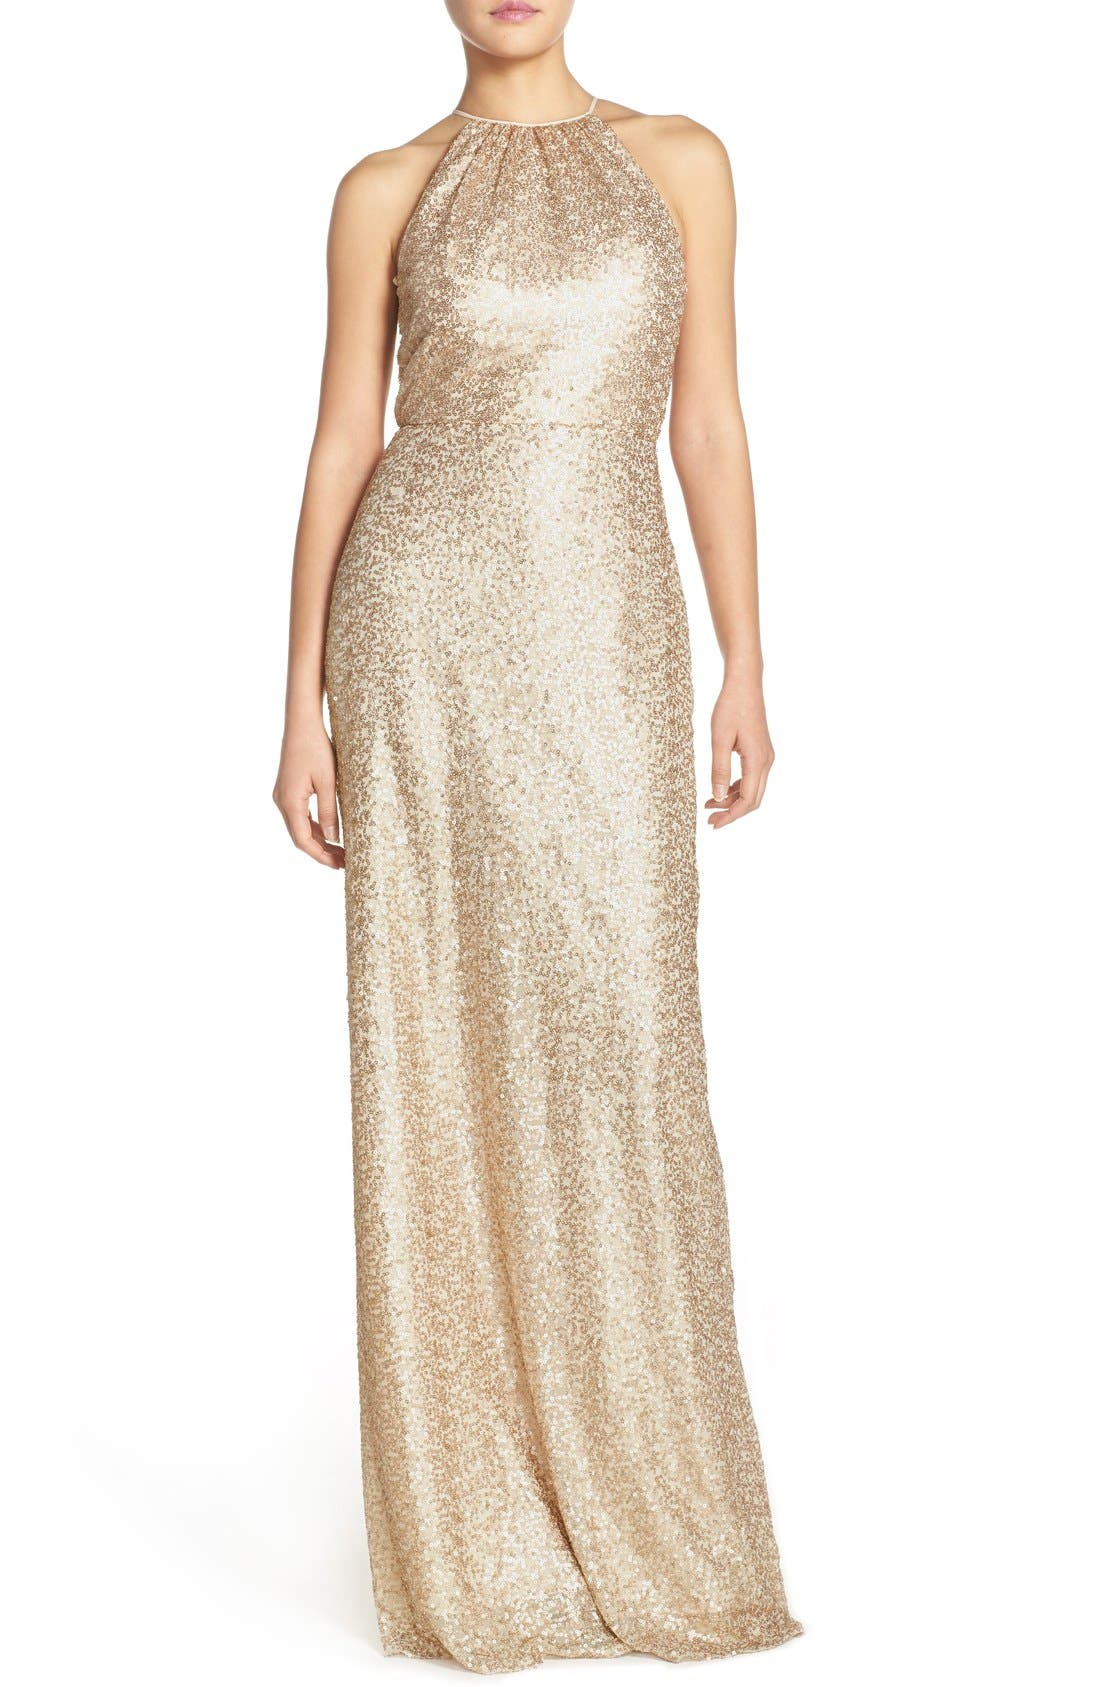 'Chandler' Sequin Tulle Halter Style Gown,                             Main thumbnail 6, color,